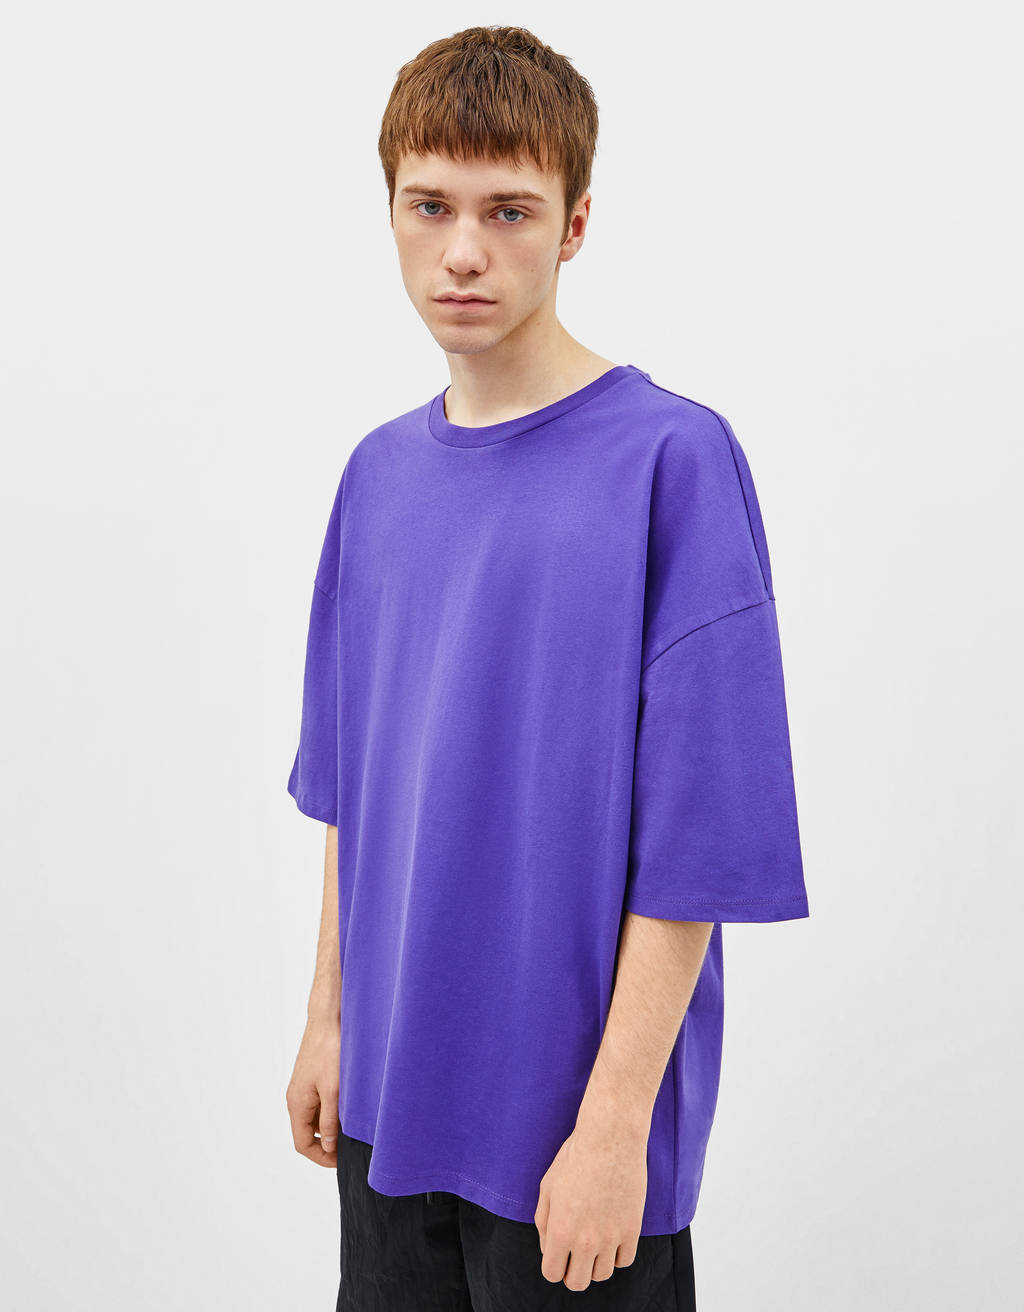 301083f94 Men's T-Shirts - Spring Summer 2019 | Bershka